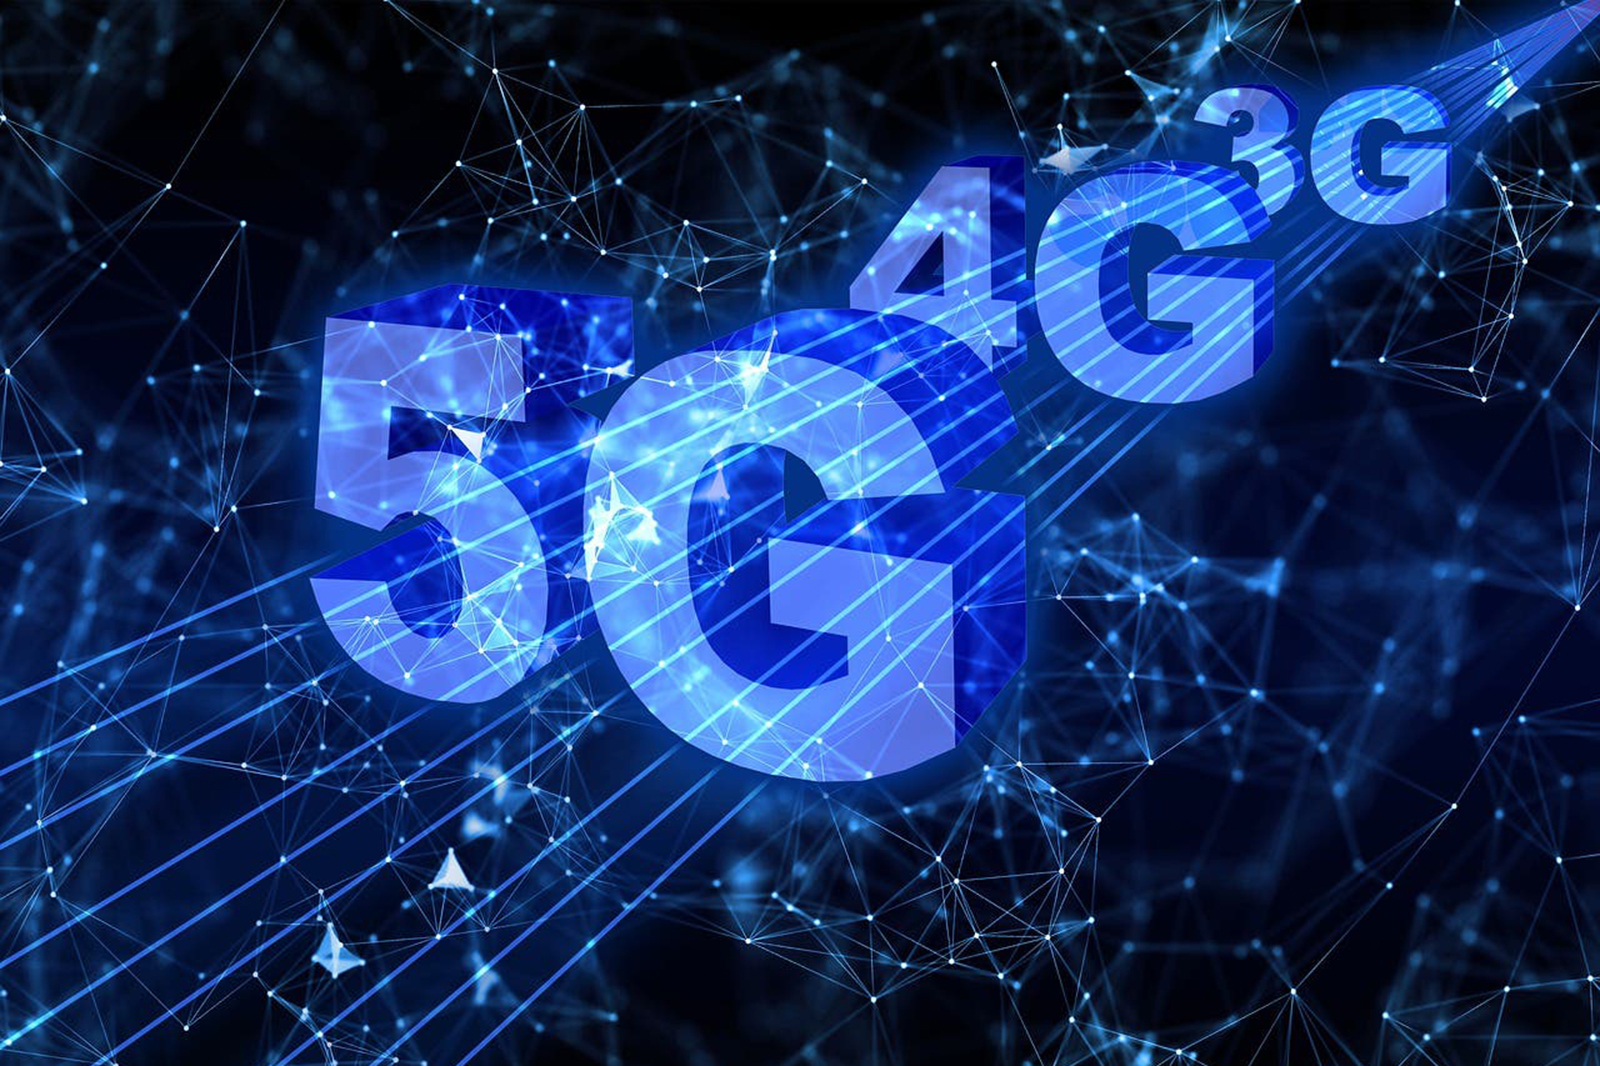 5G theories debunked The fear of the next gen wireless technology